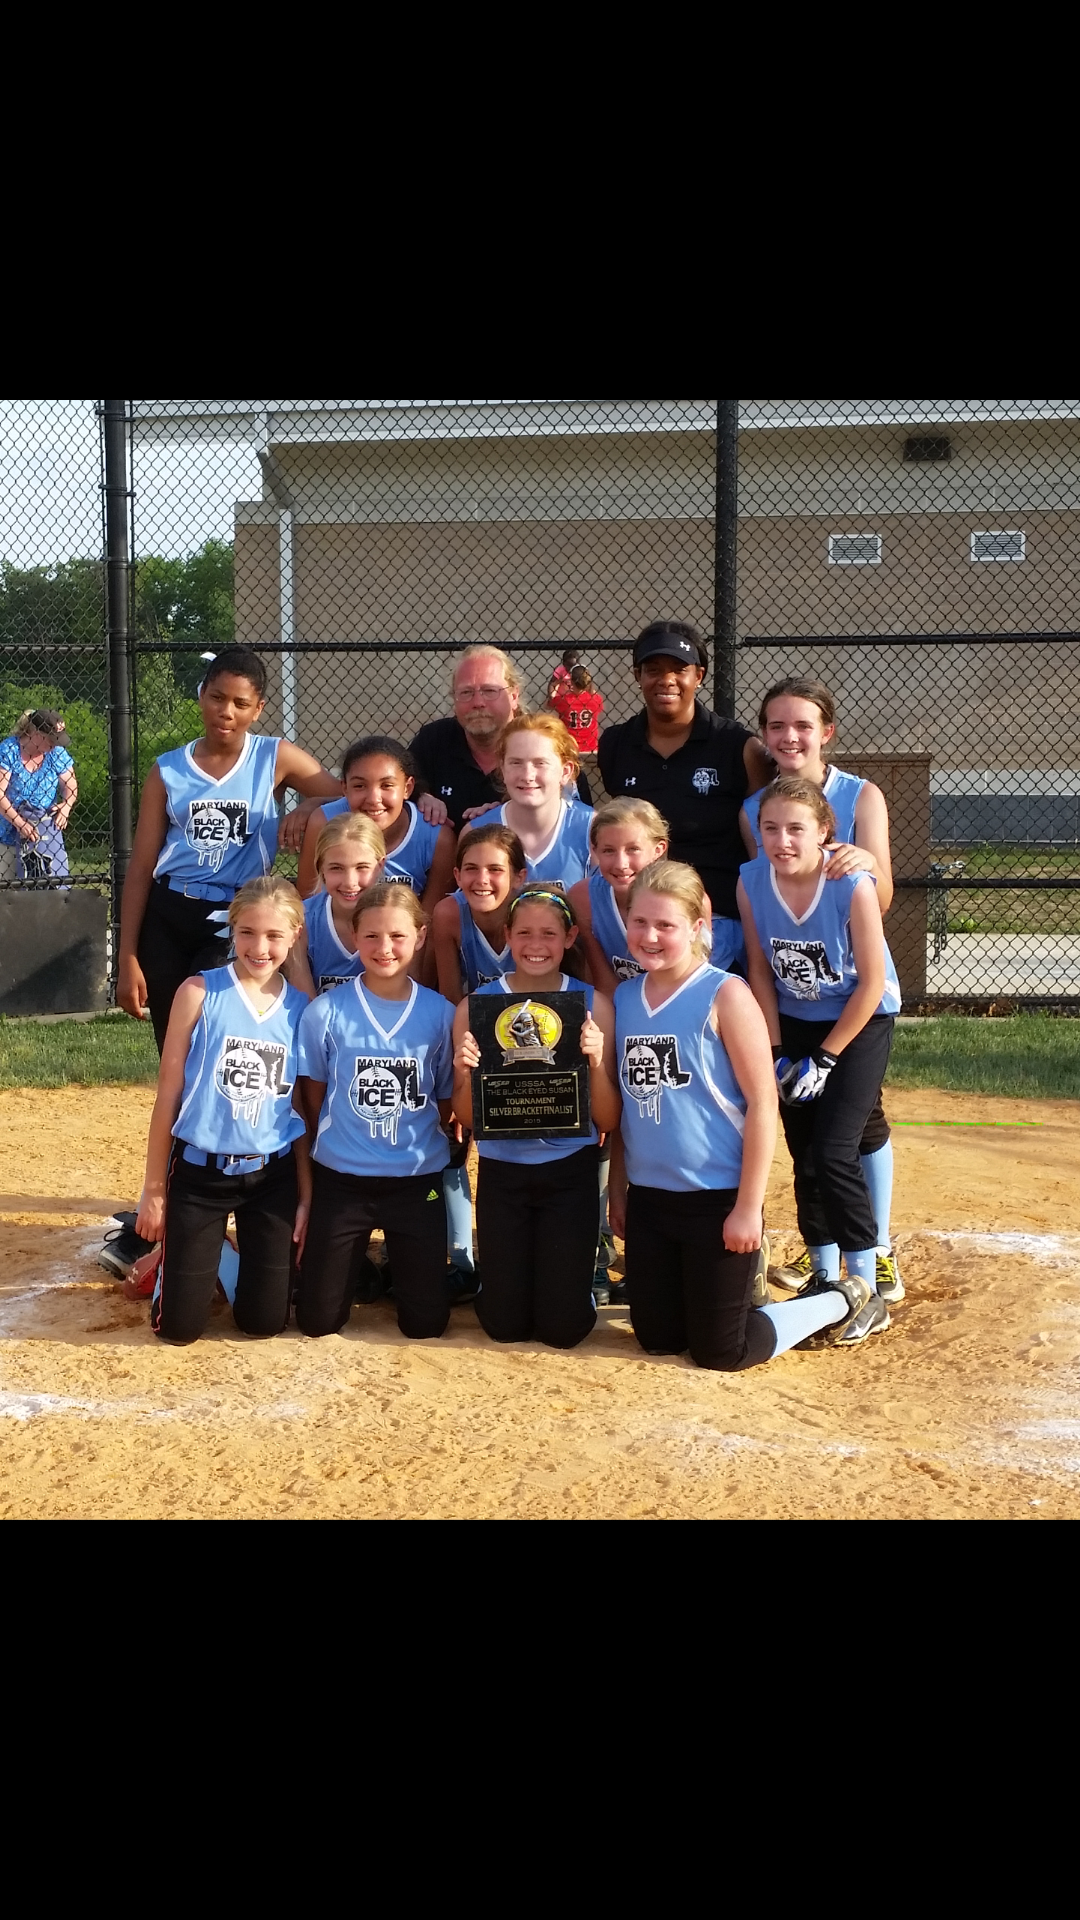 U-12 Maryland Black Ice Softball Team